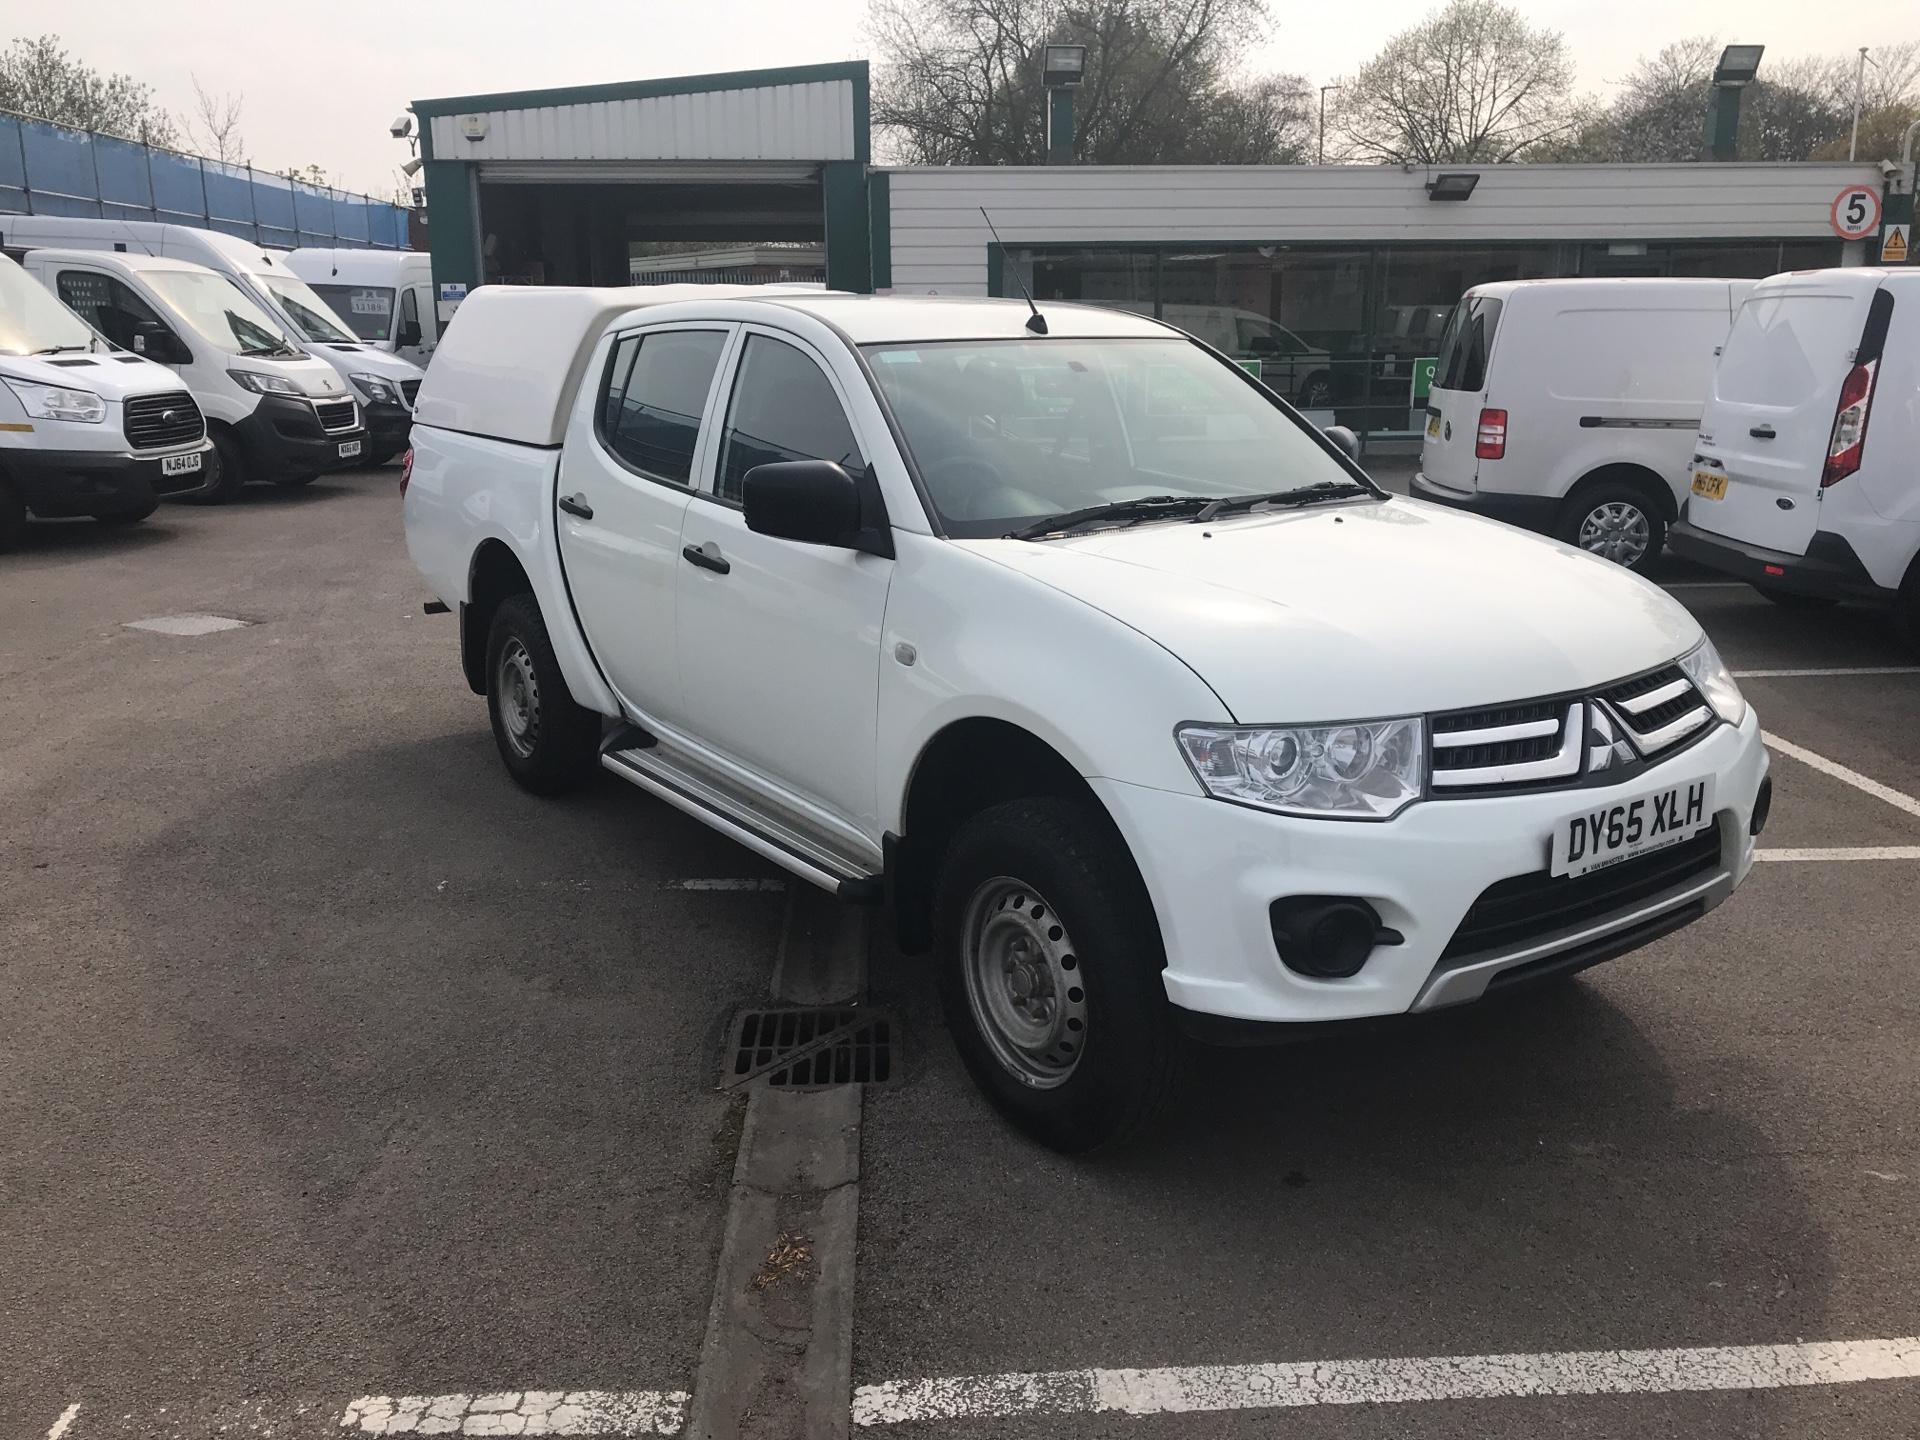 2015 Mitsubishi L200 Double Cab Di-D 4Life 4Wd 134Bhp *VALUE RANGE VEHICLE CONDITION REFLECTED IN PRICE* (DY65XLH)